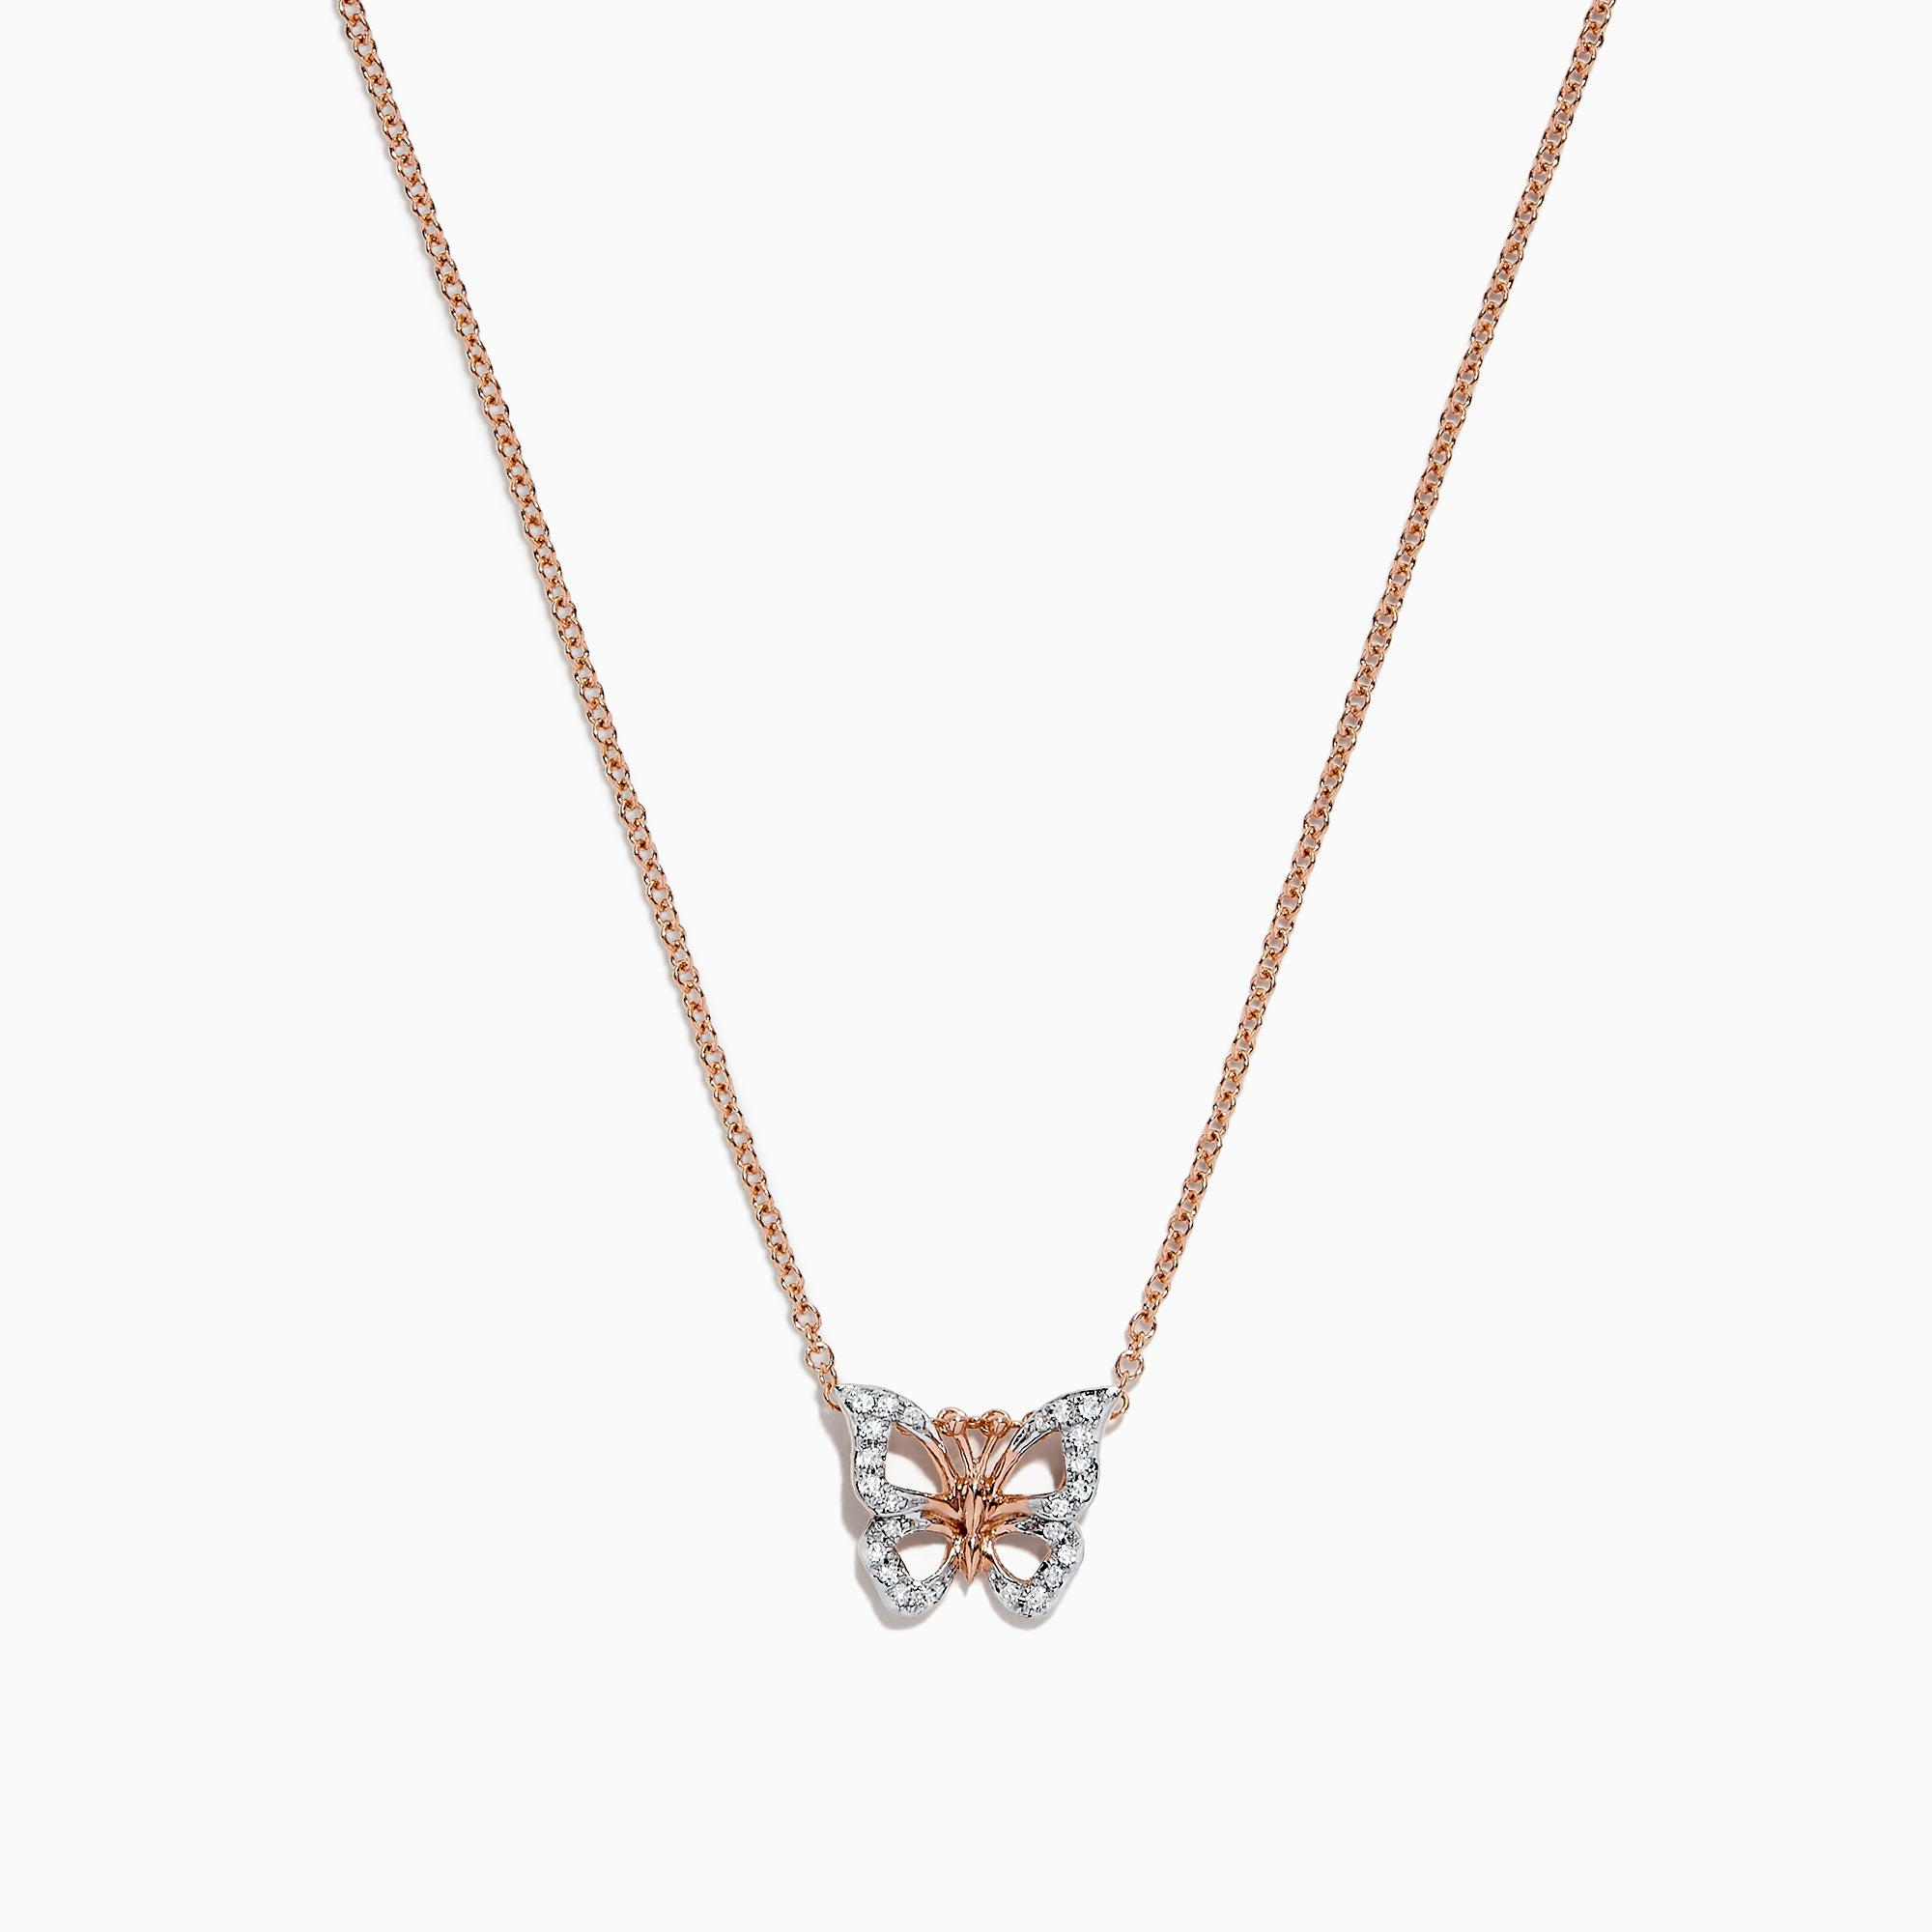 Effy Kidz 14K Two Tone Gold Diamond Butterfly Pendant, 0.08 TCW